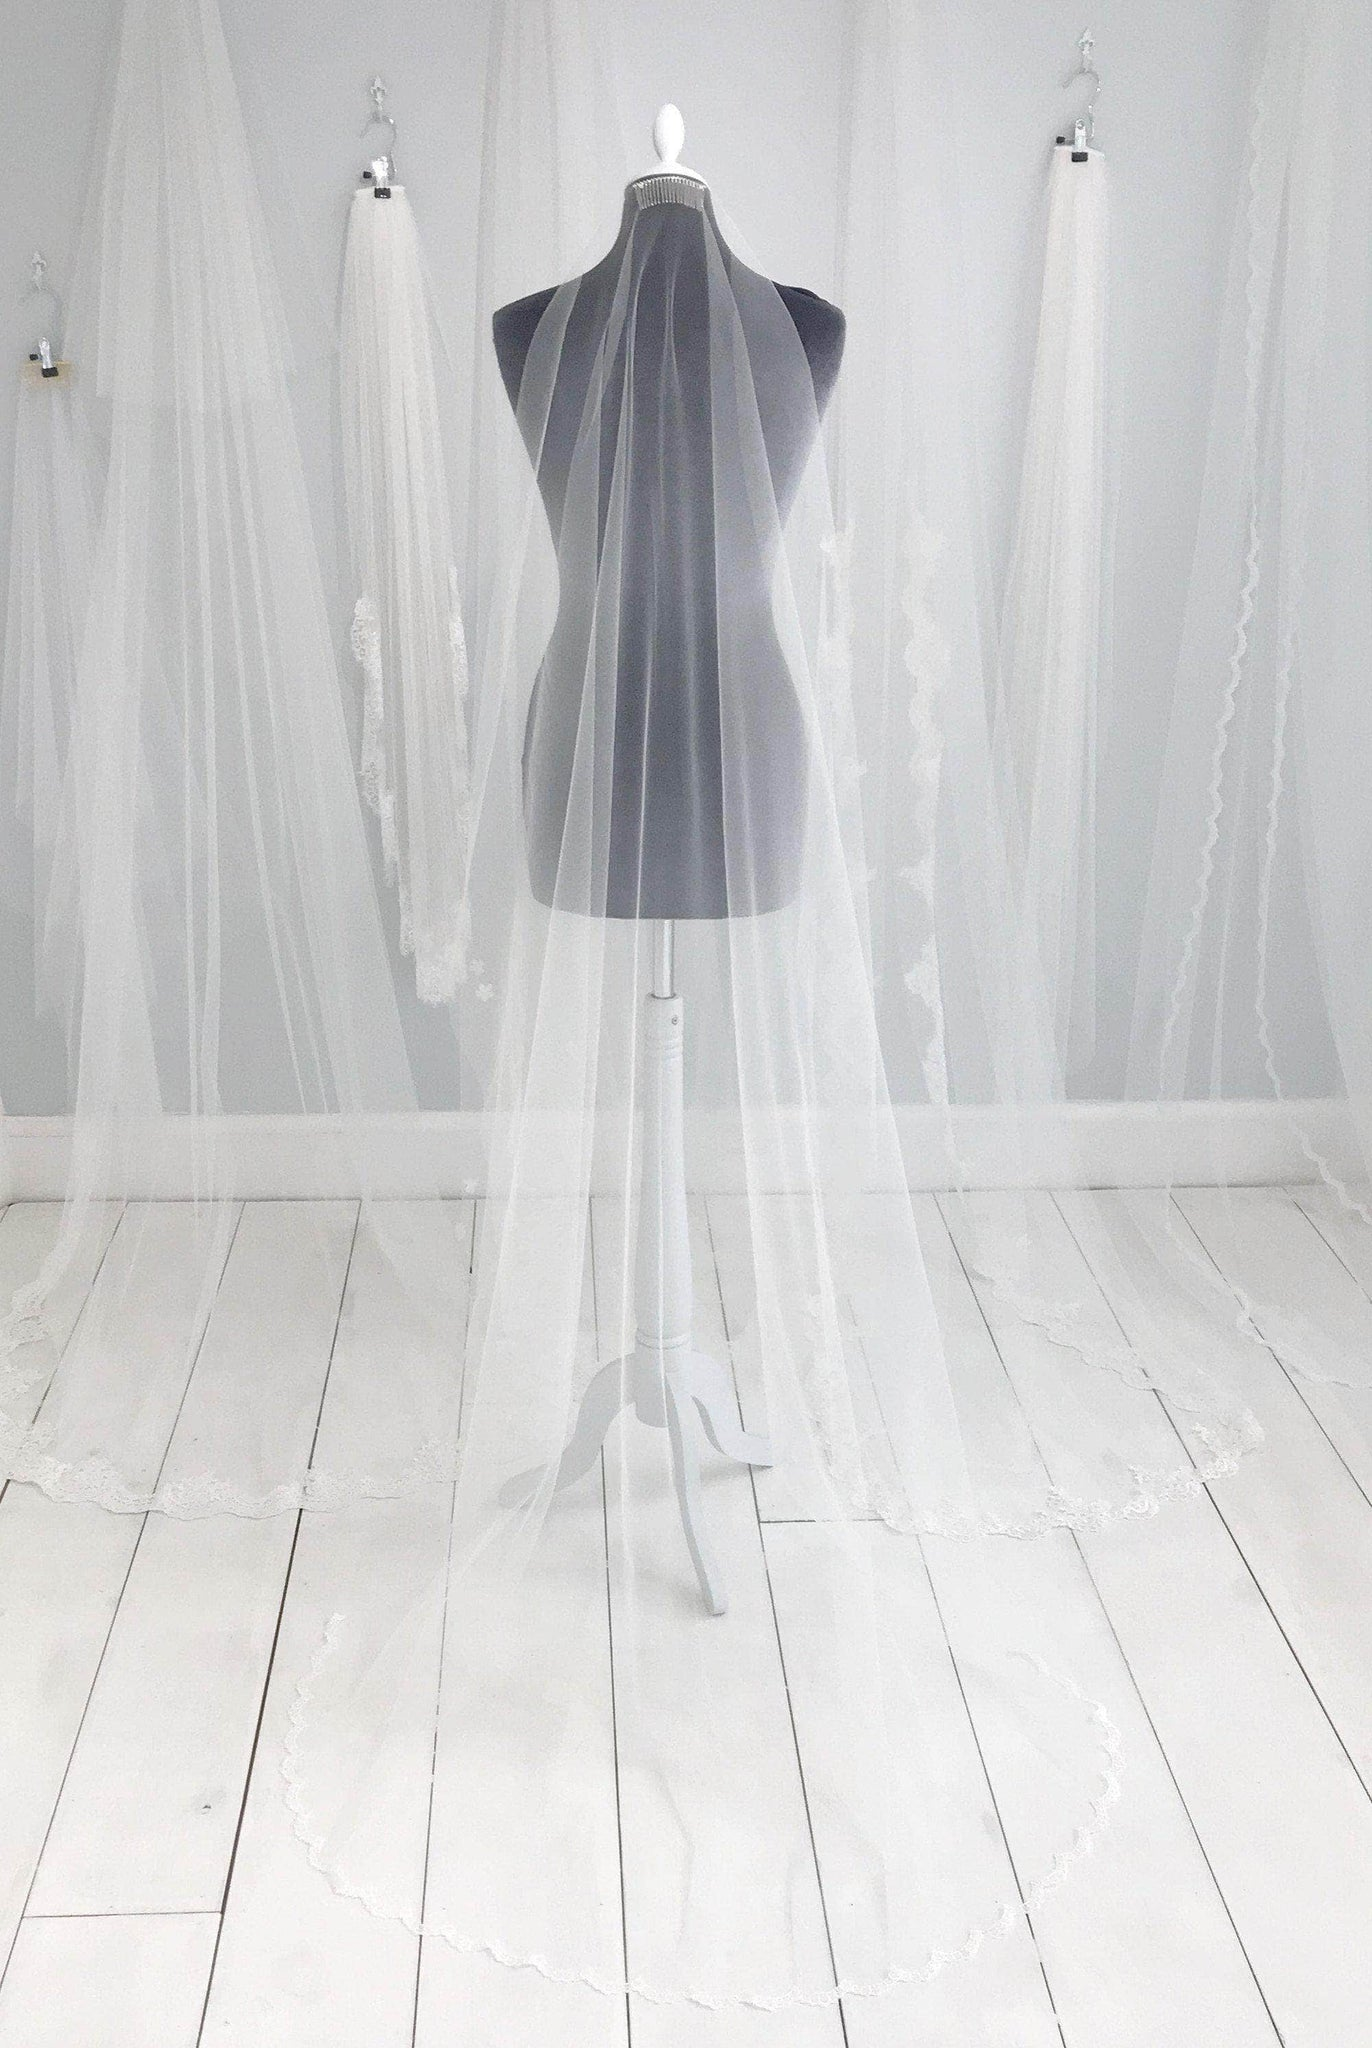 barley there wedding veil with semi edge lace